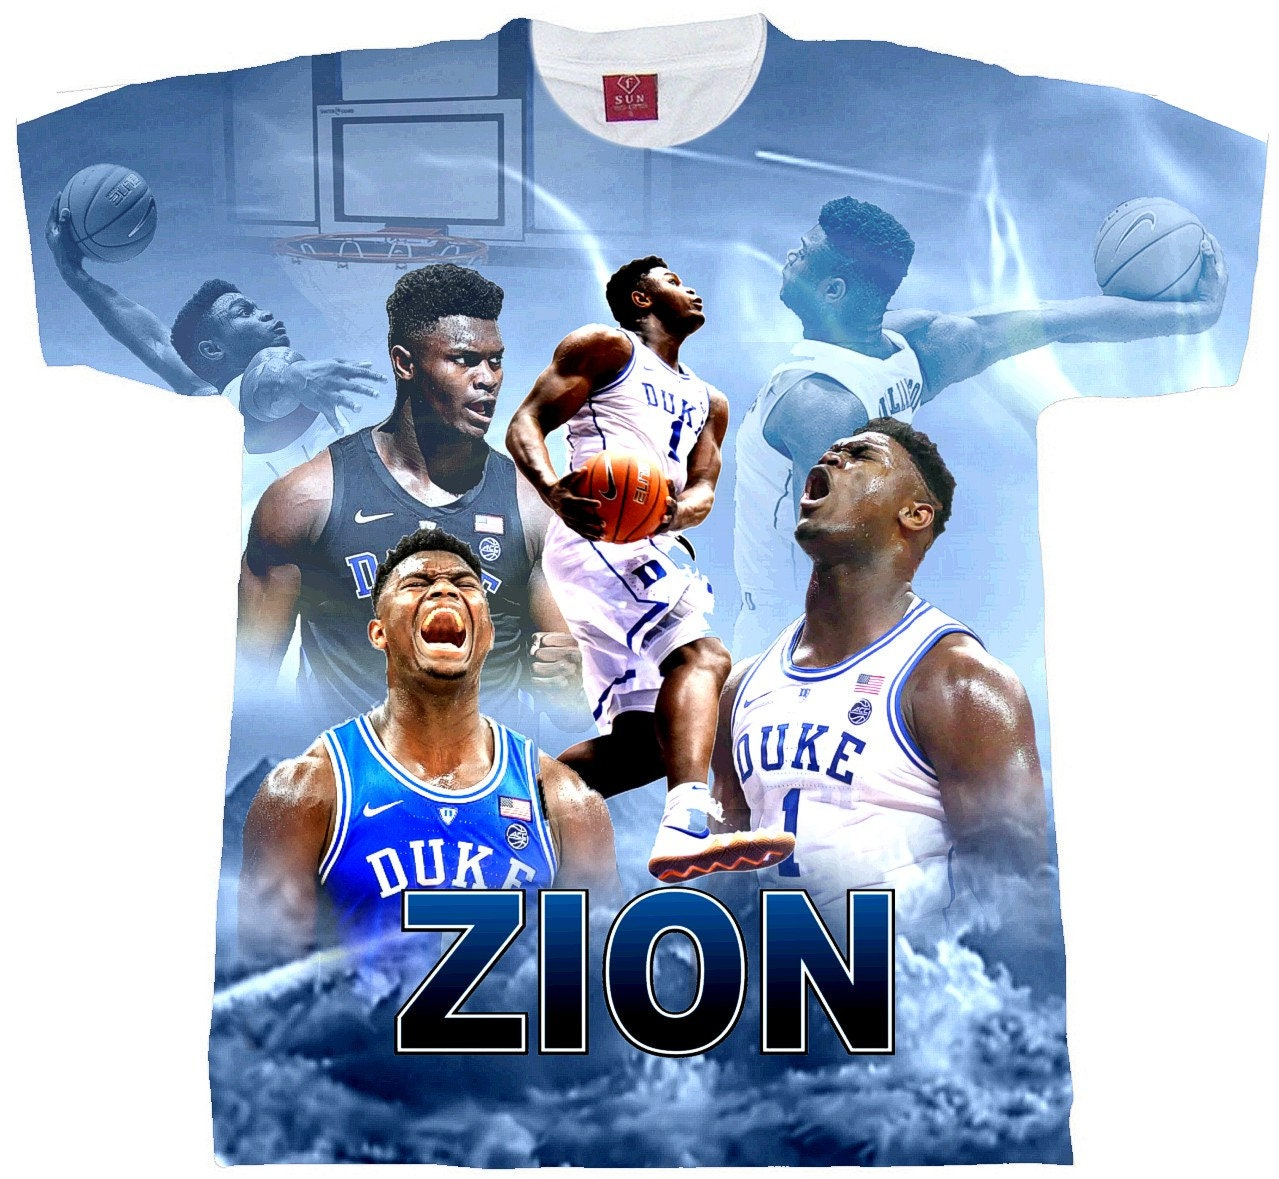 brand new 8d434 a9124 ZION T-shirt. Adult And Youth Sizes. Zion Williamson Shirt. Duke T-shirt.  Zion T-Shirt. Duke Team Shirt